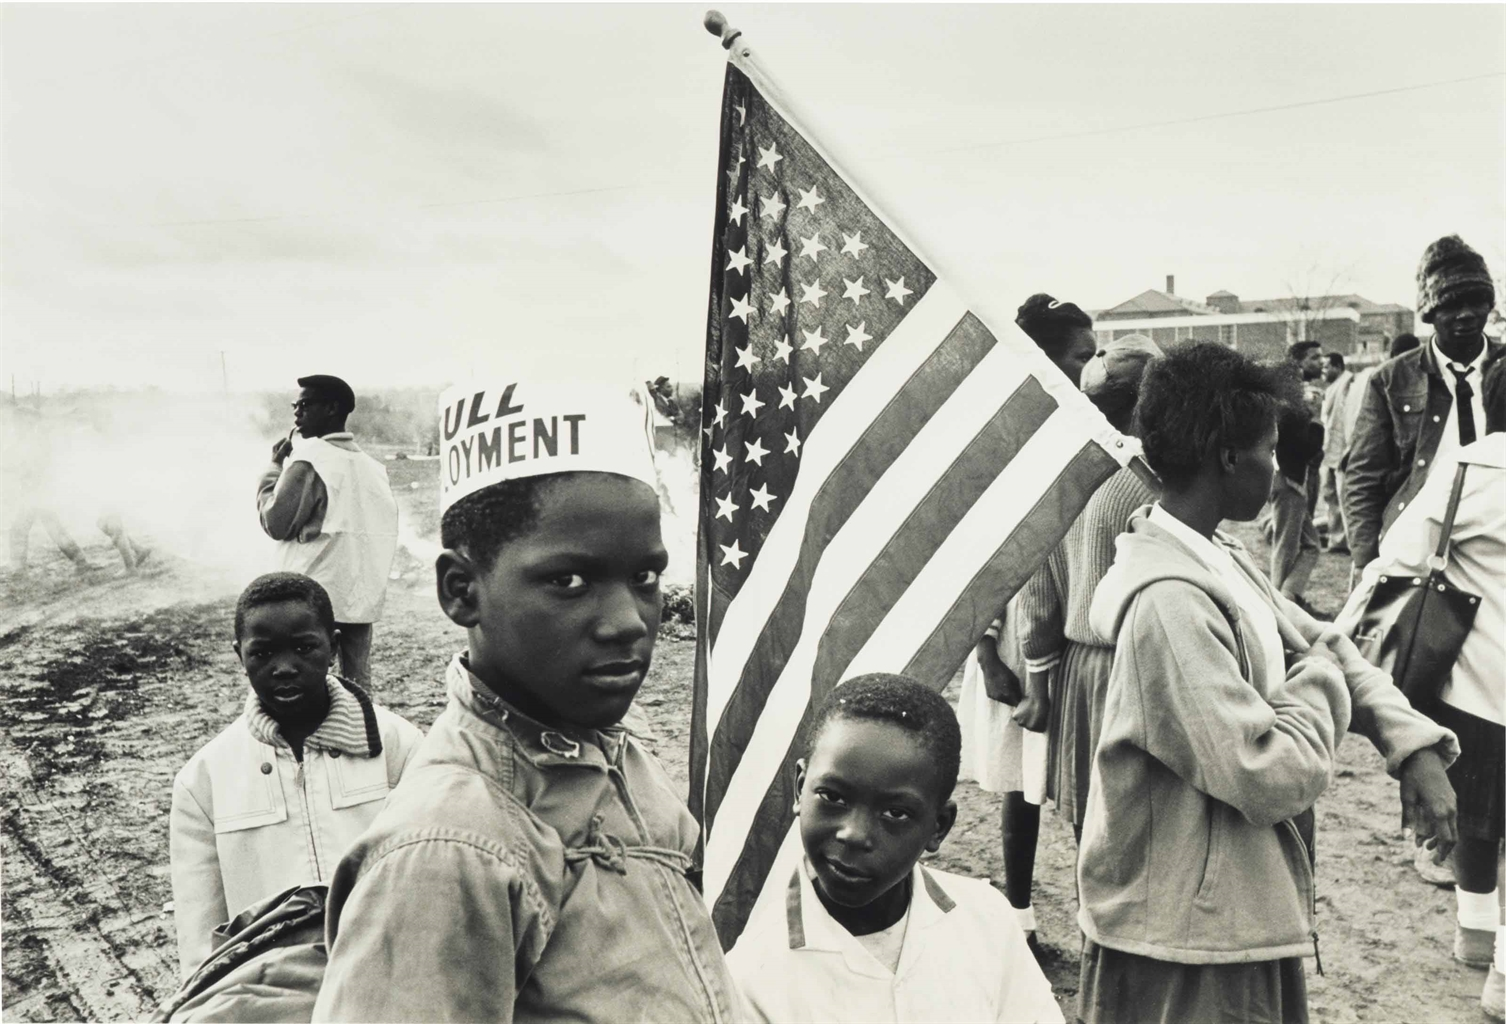 Dennis Hopper-Untitled (Civil Rights March, Louisiana)-1964